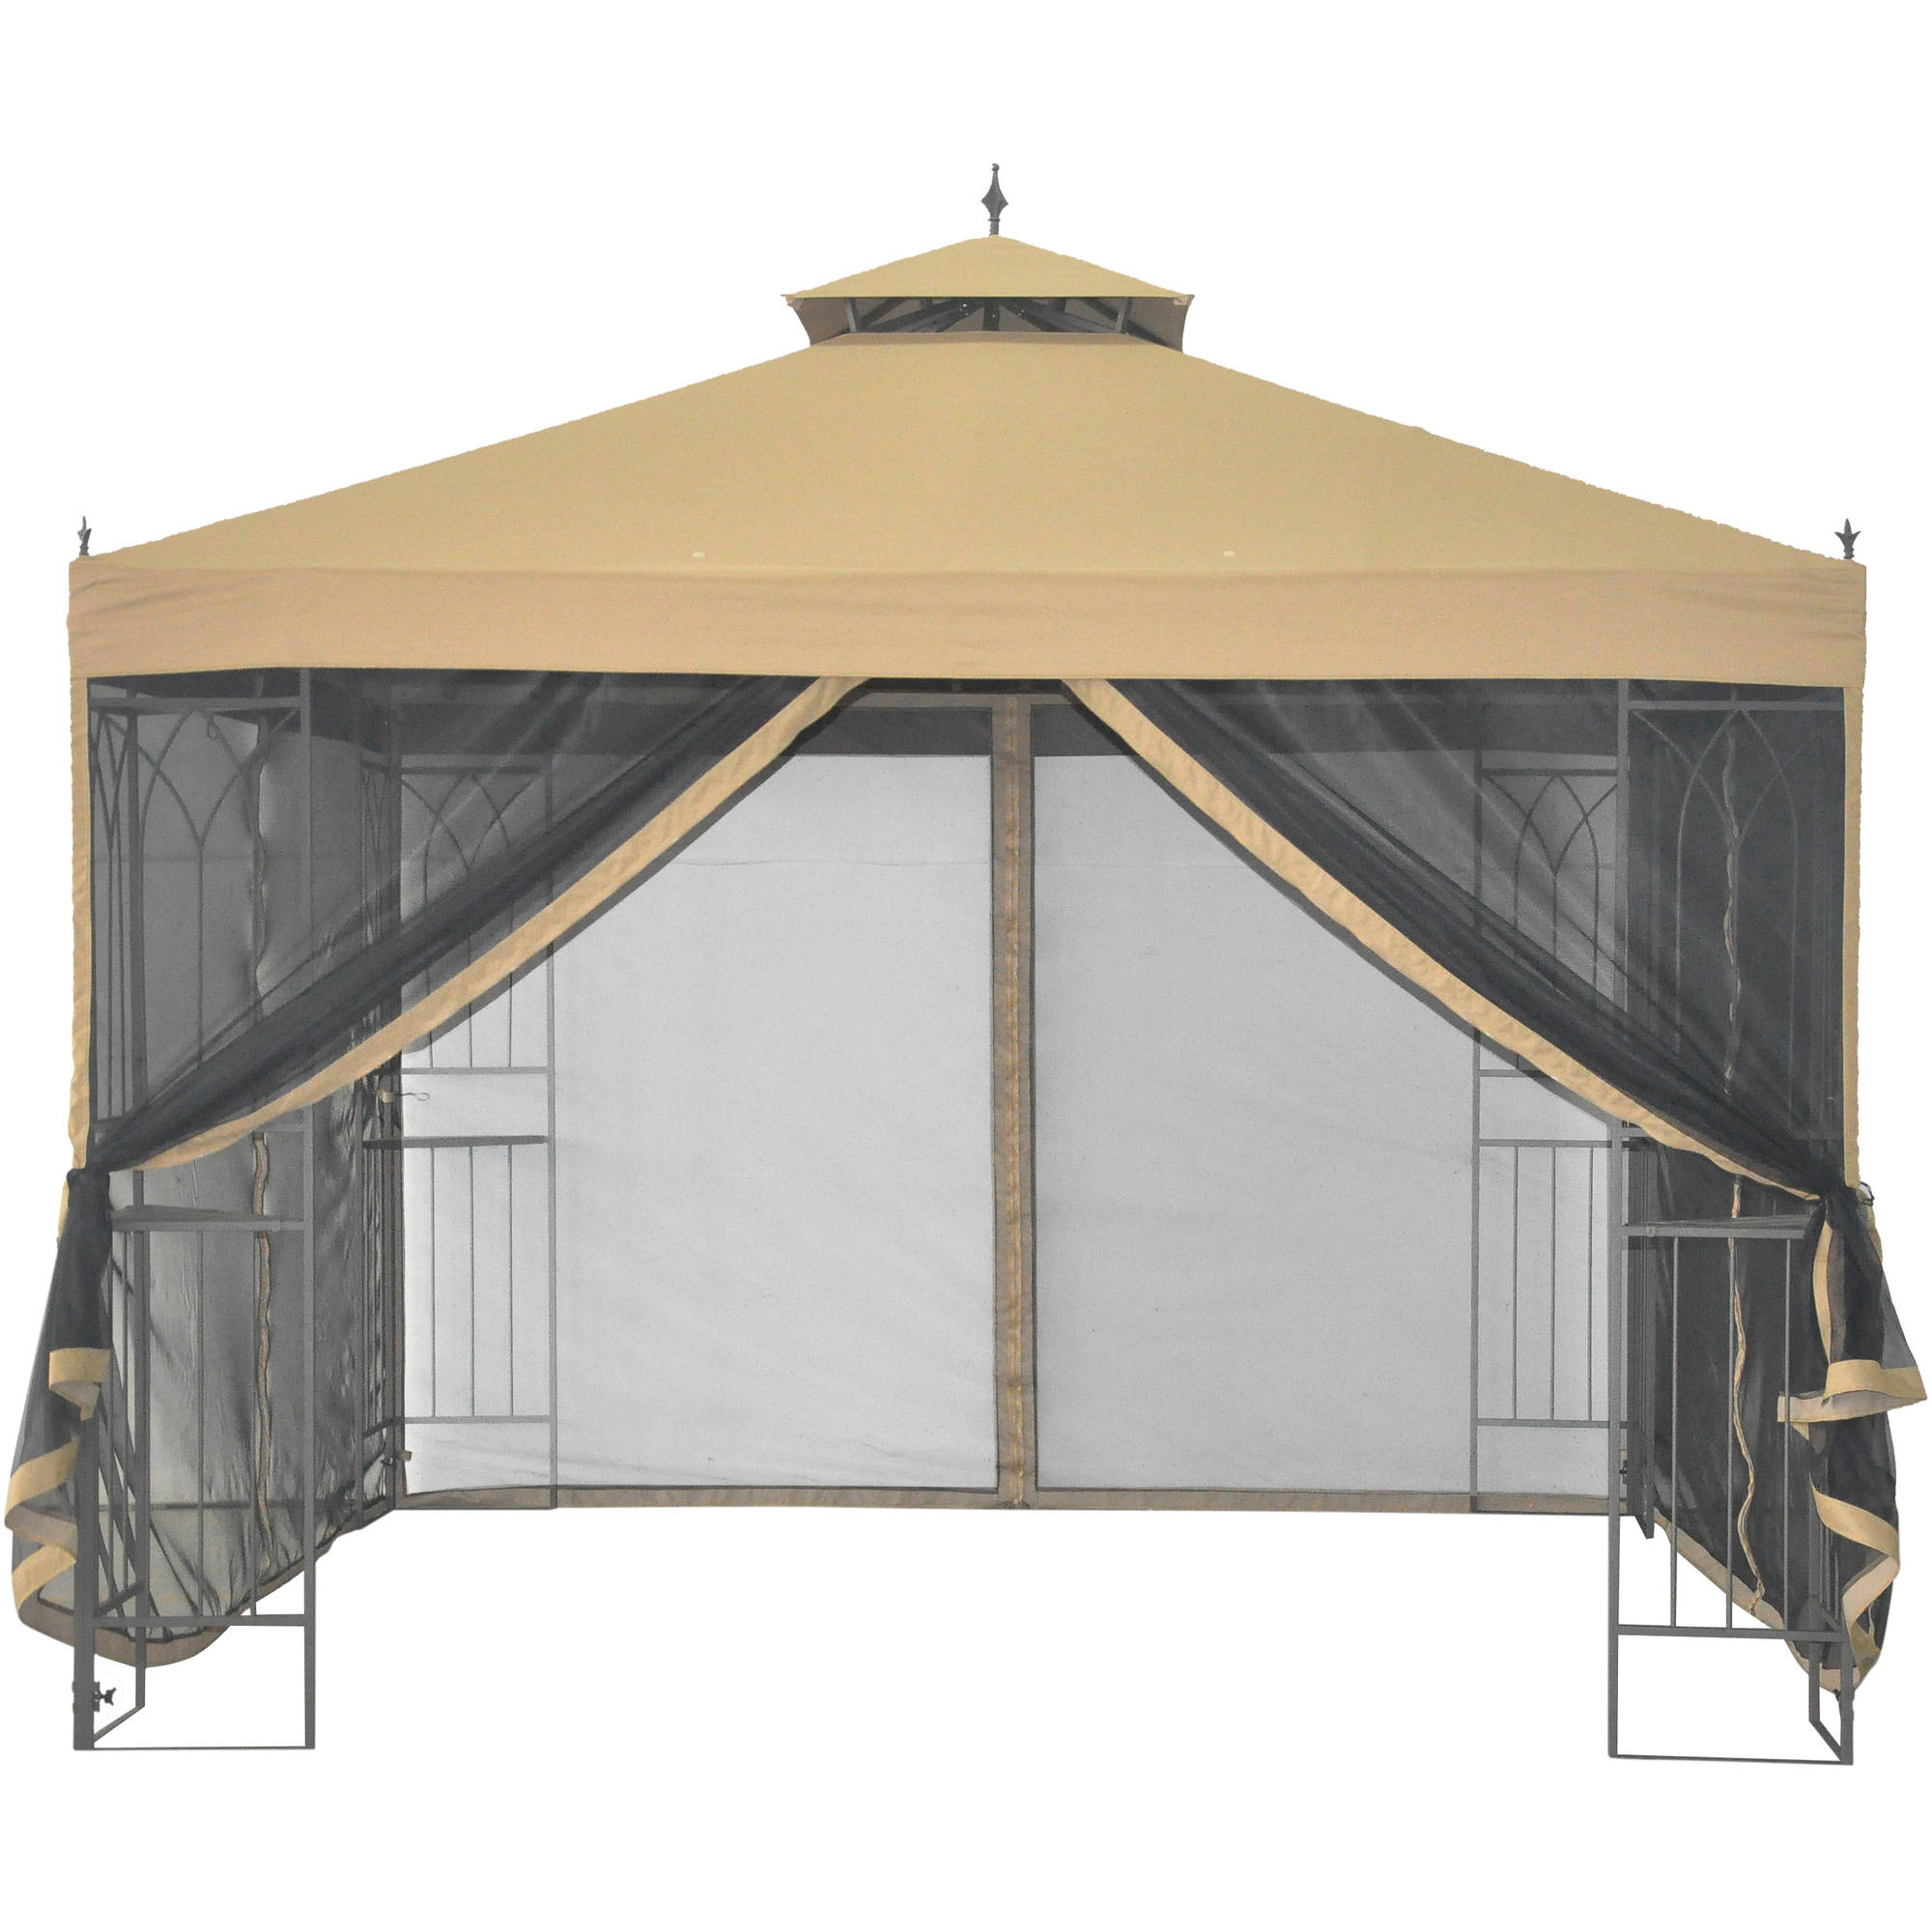 Screened Gazebo | Screen Gazebo Walmart | Pop Up Screen Gazebo